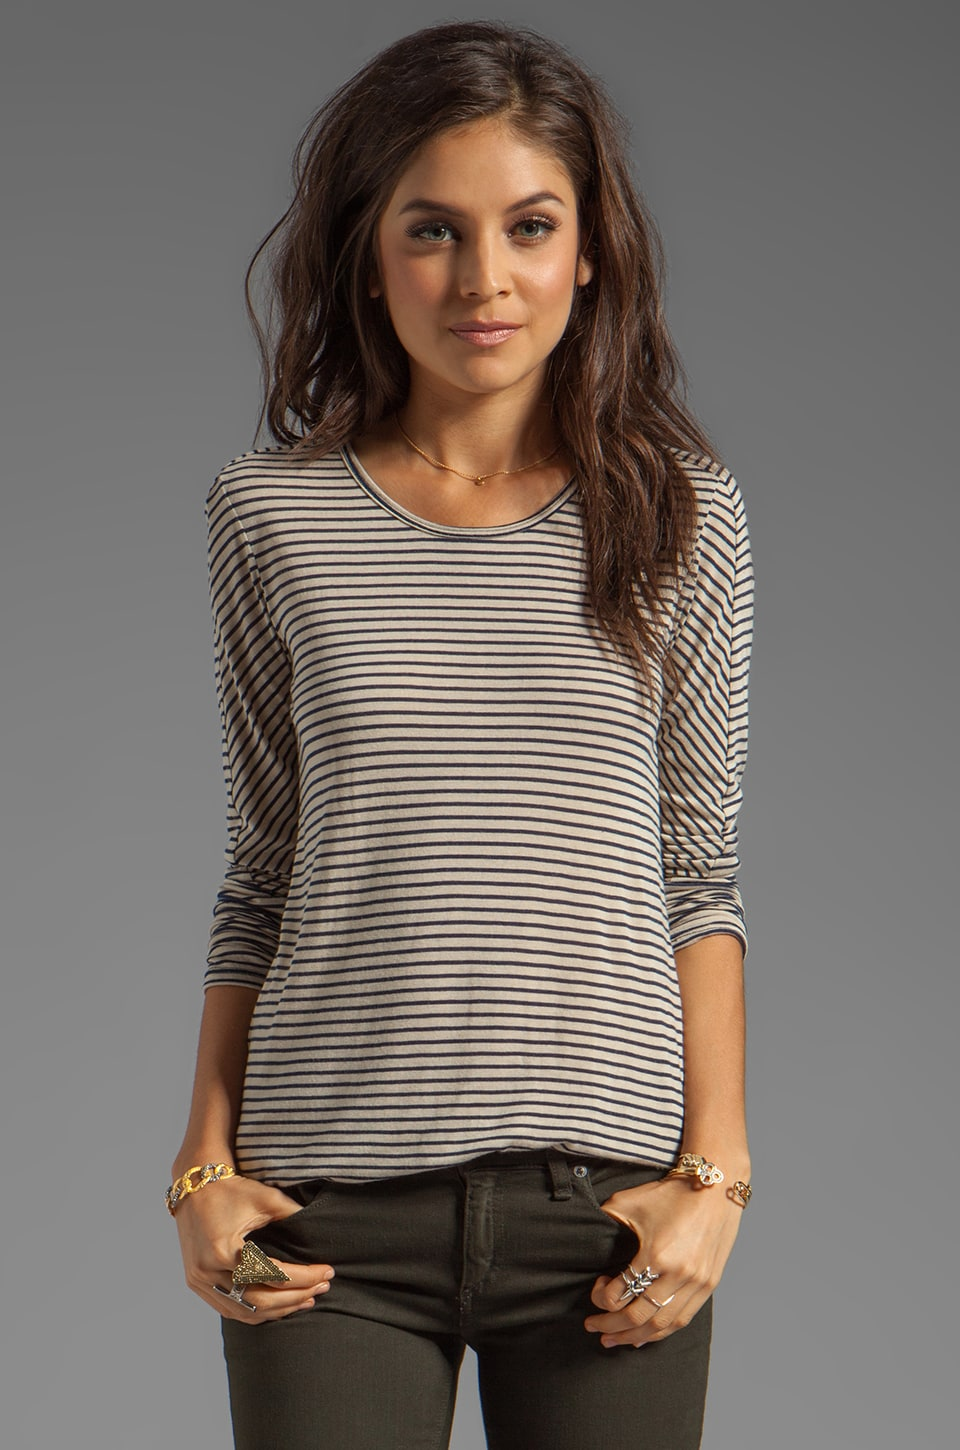 19 4t Long Sleeve Panel Tee in Navy/Beige Stripe